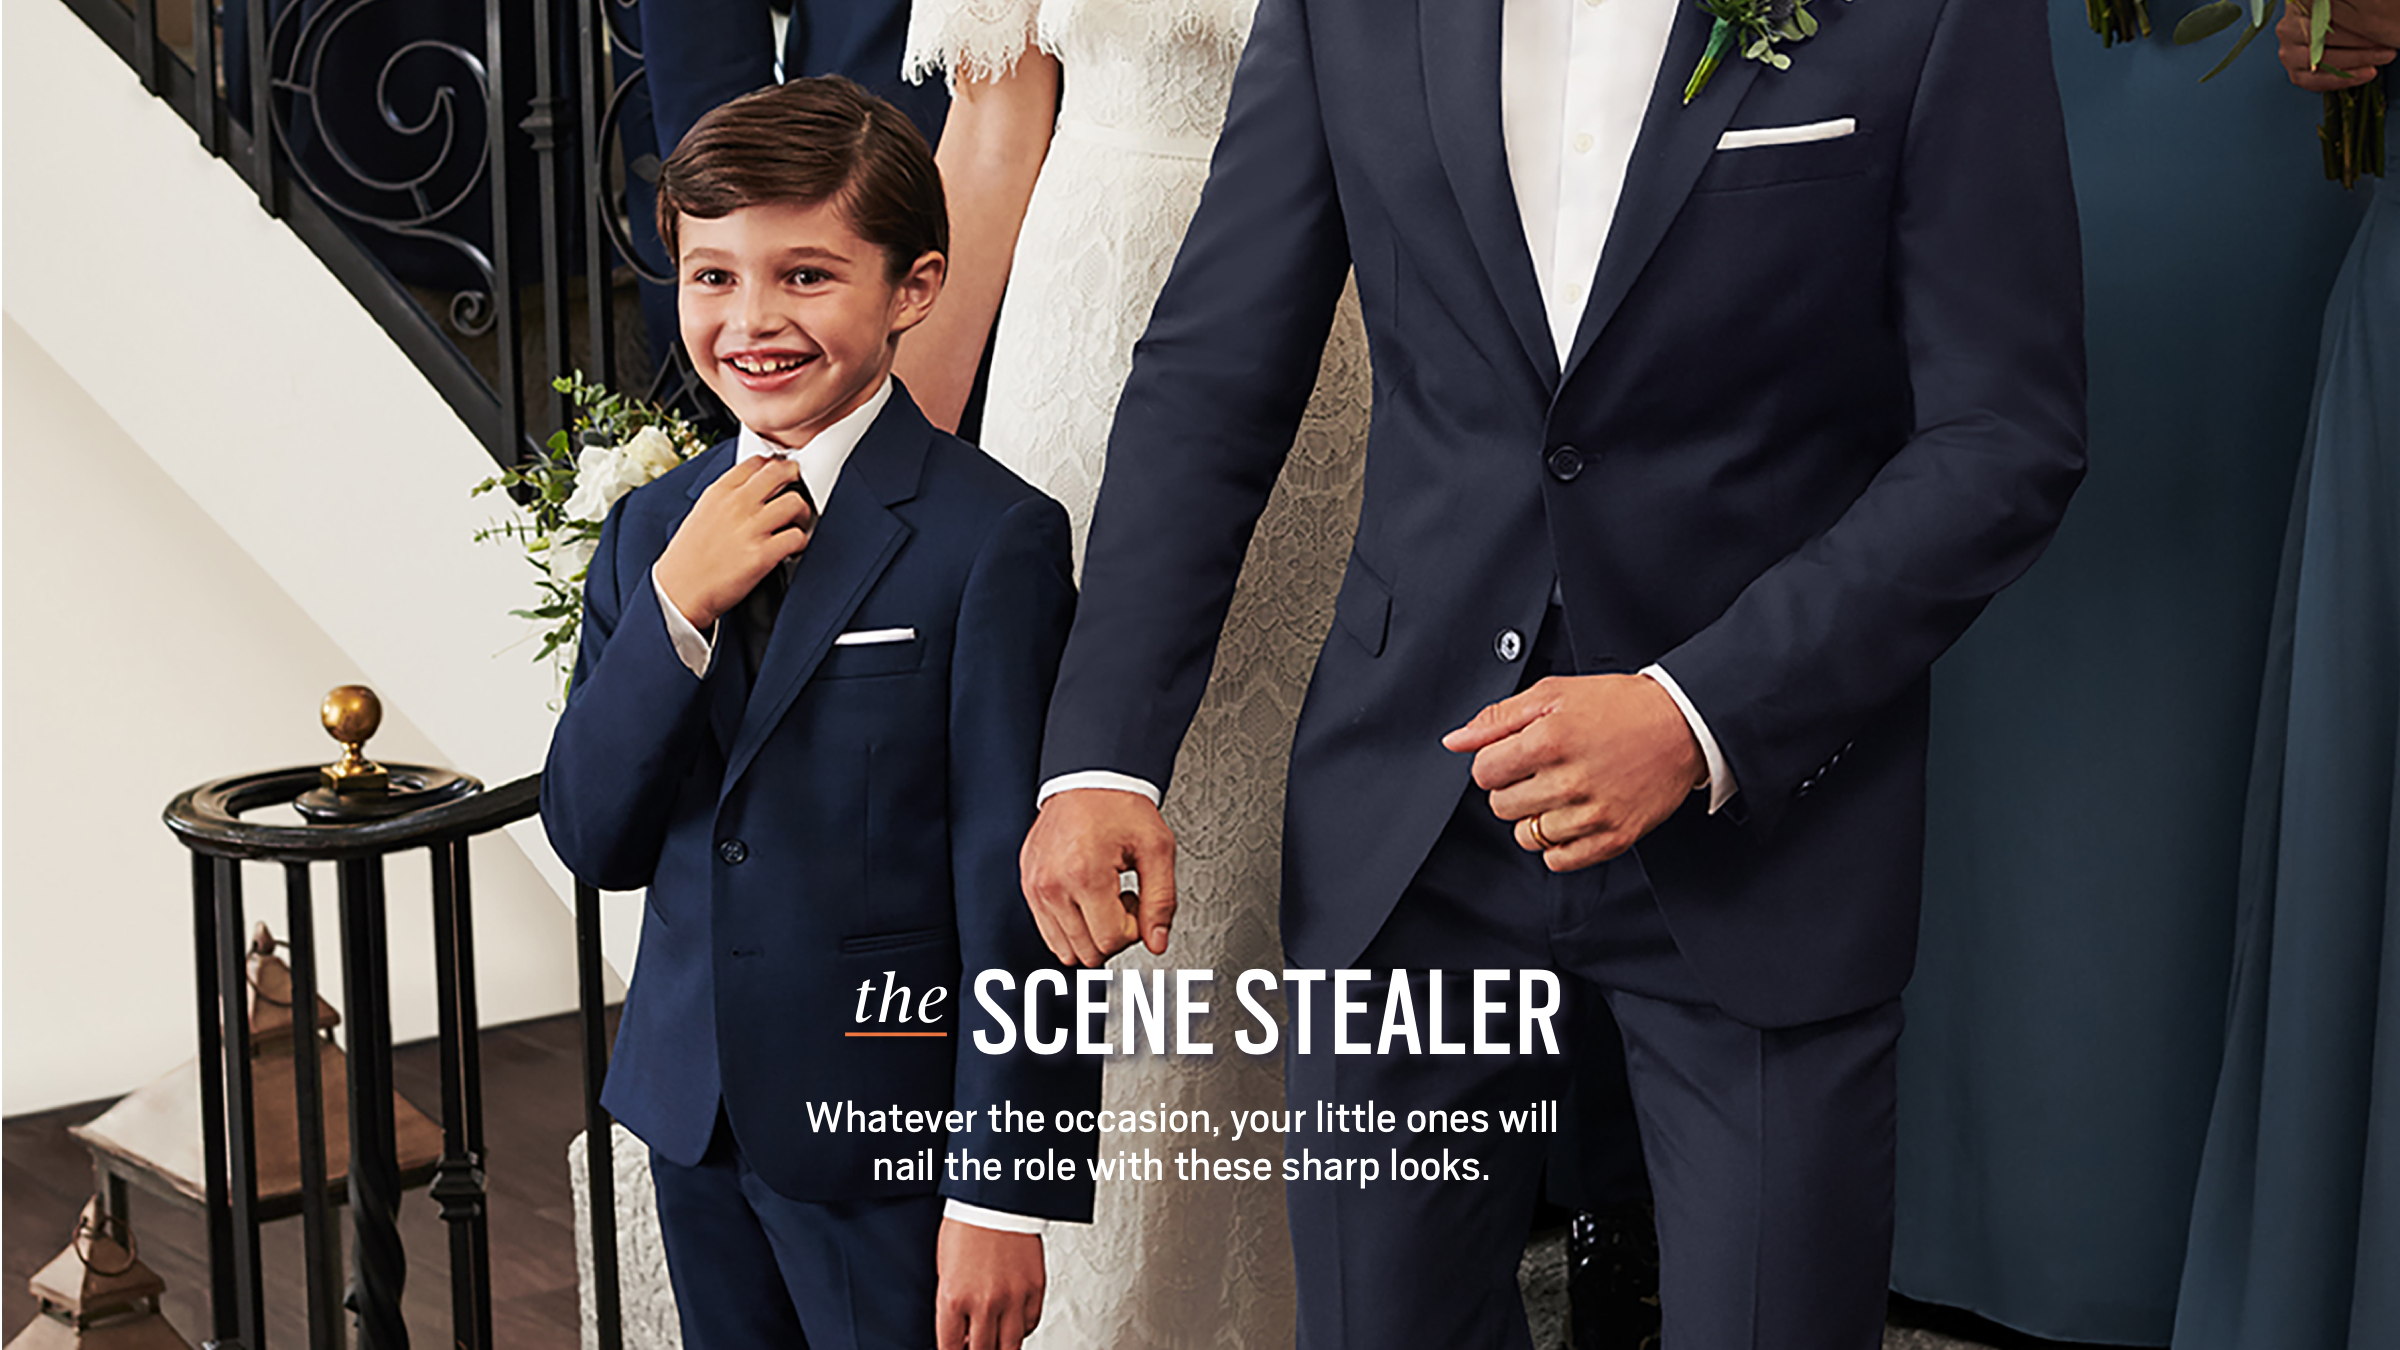 The Scene Stealer. Whatever the occasion, your little ones will nail the role with these sharp looks.